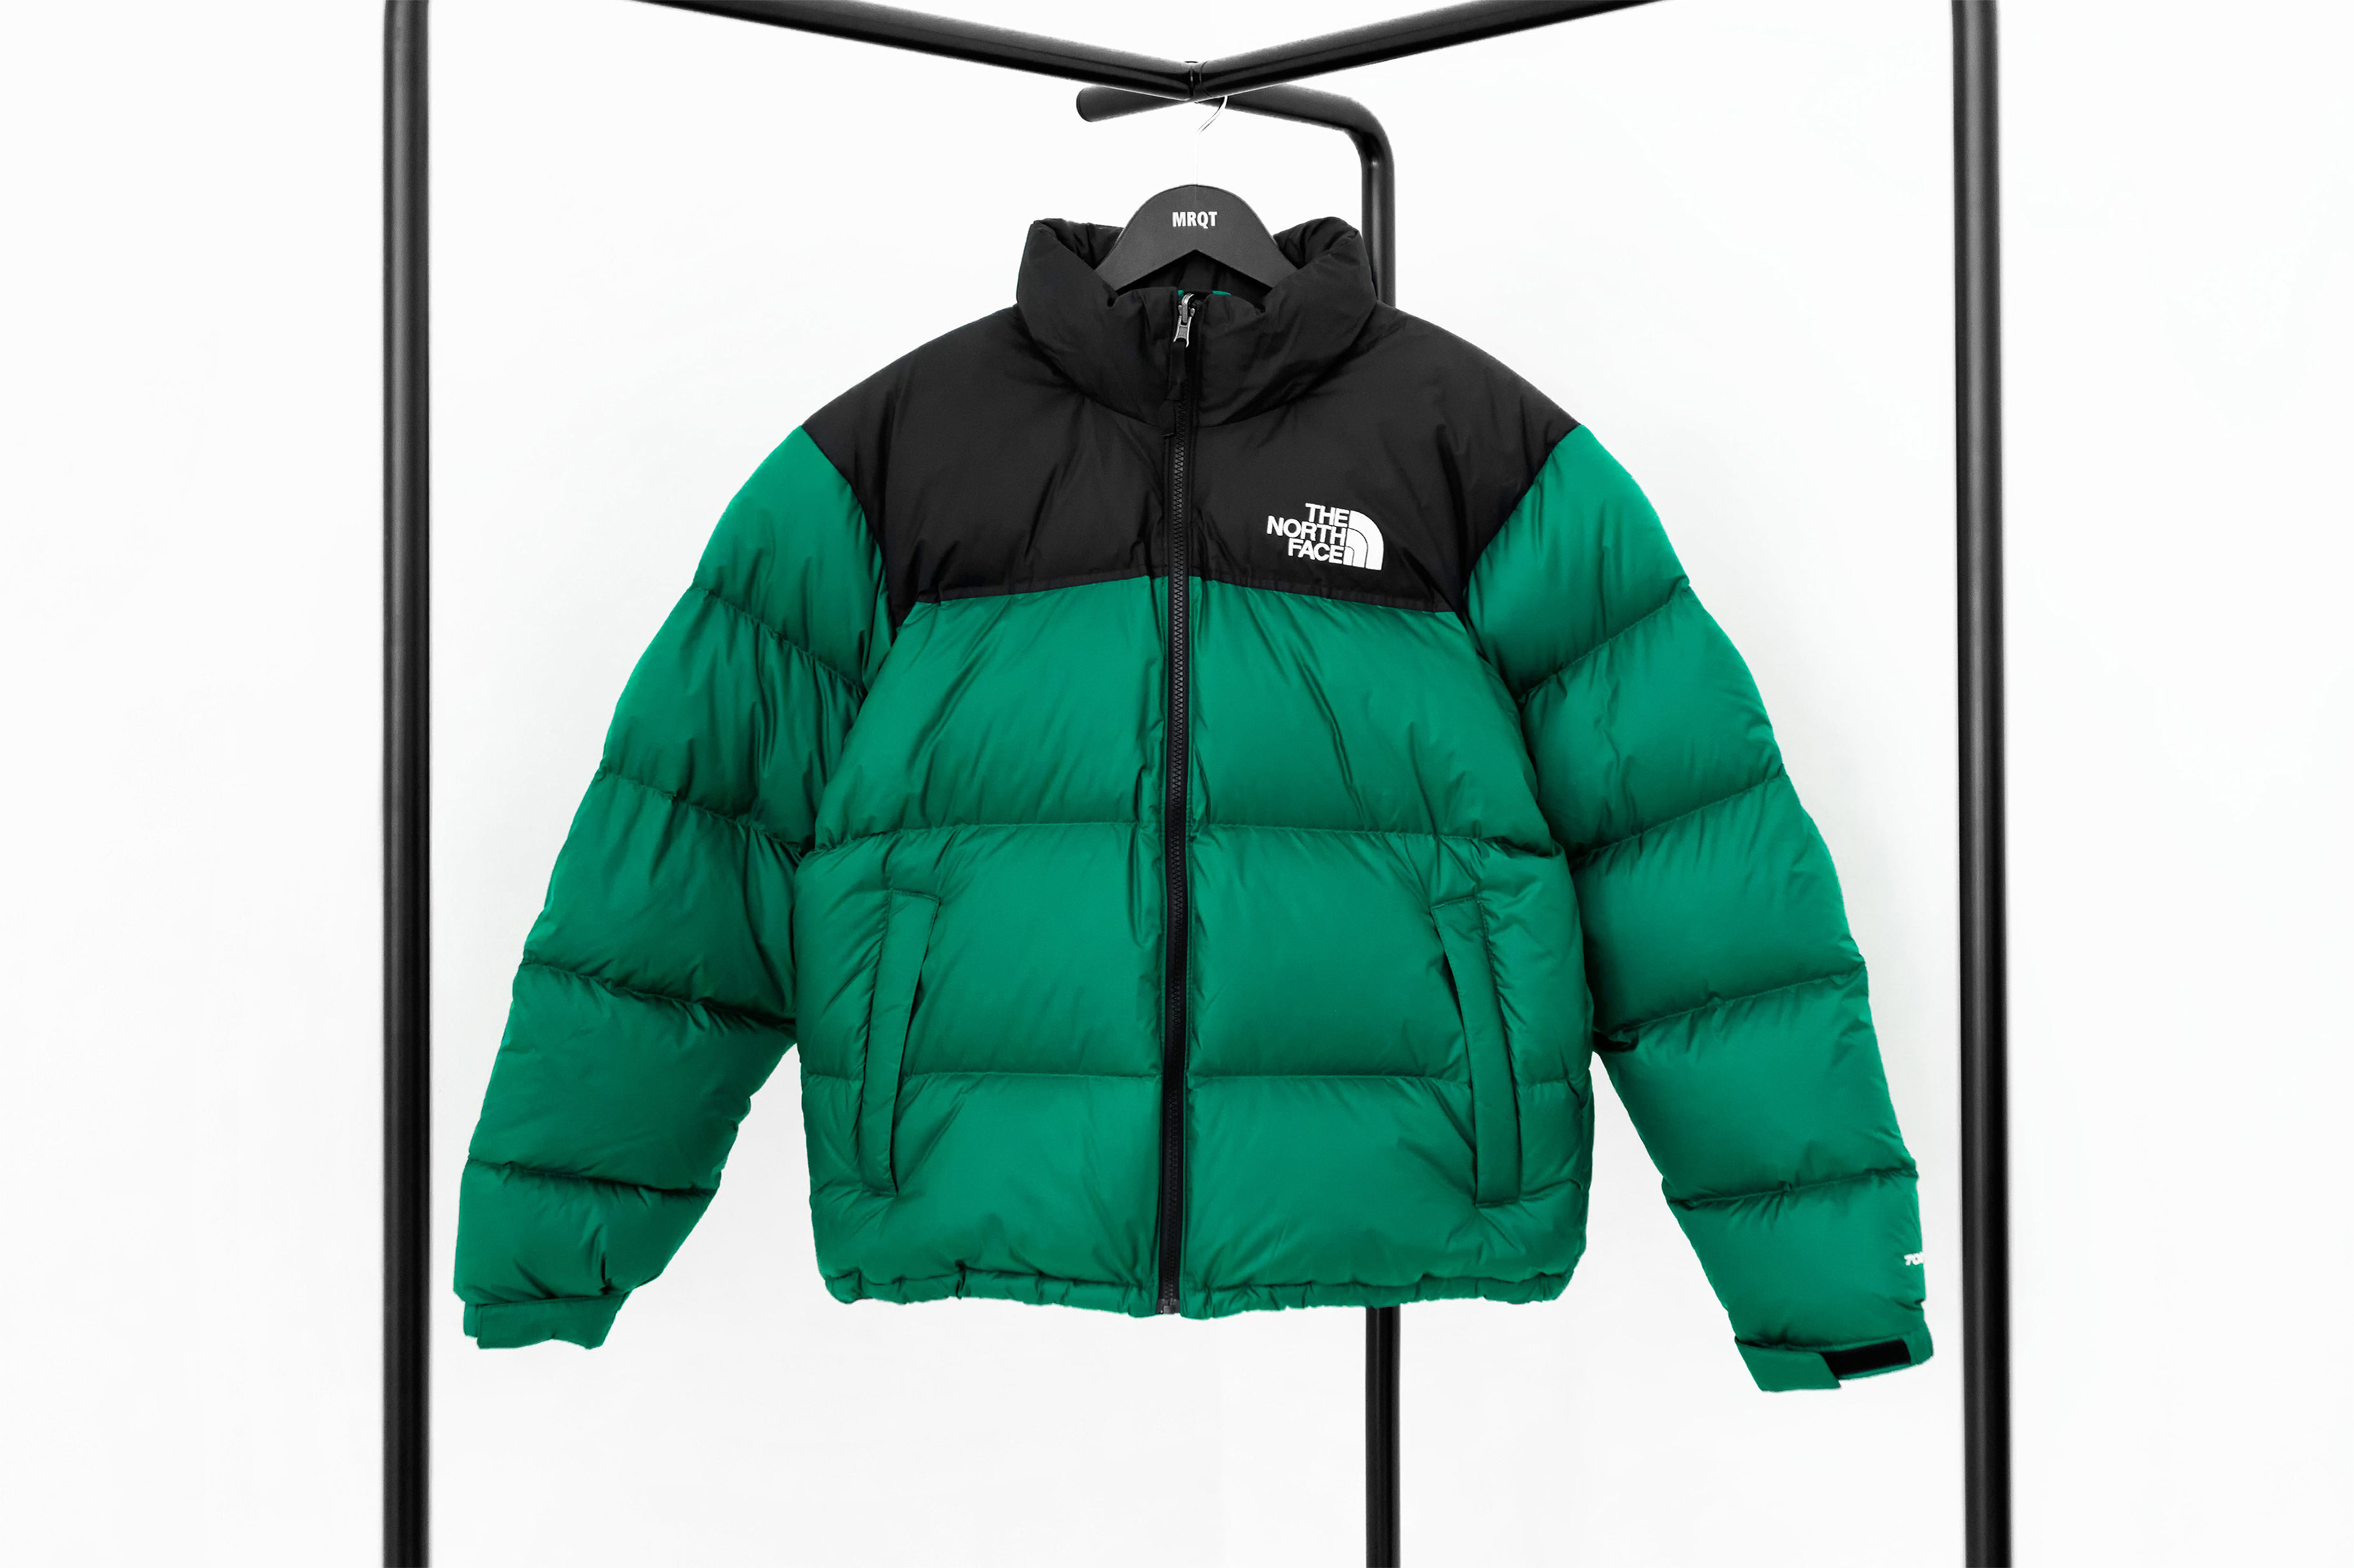 THE NORTH FACE - '96 Retro Nuptse